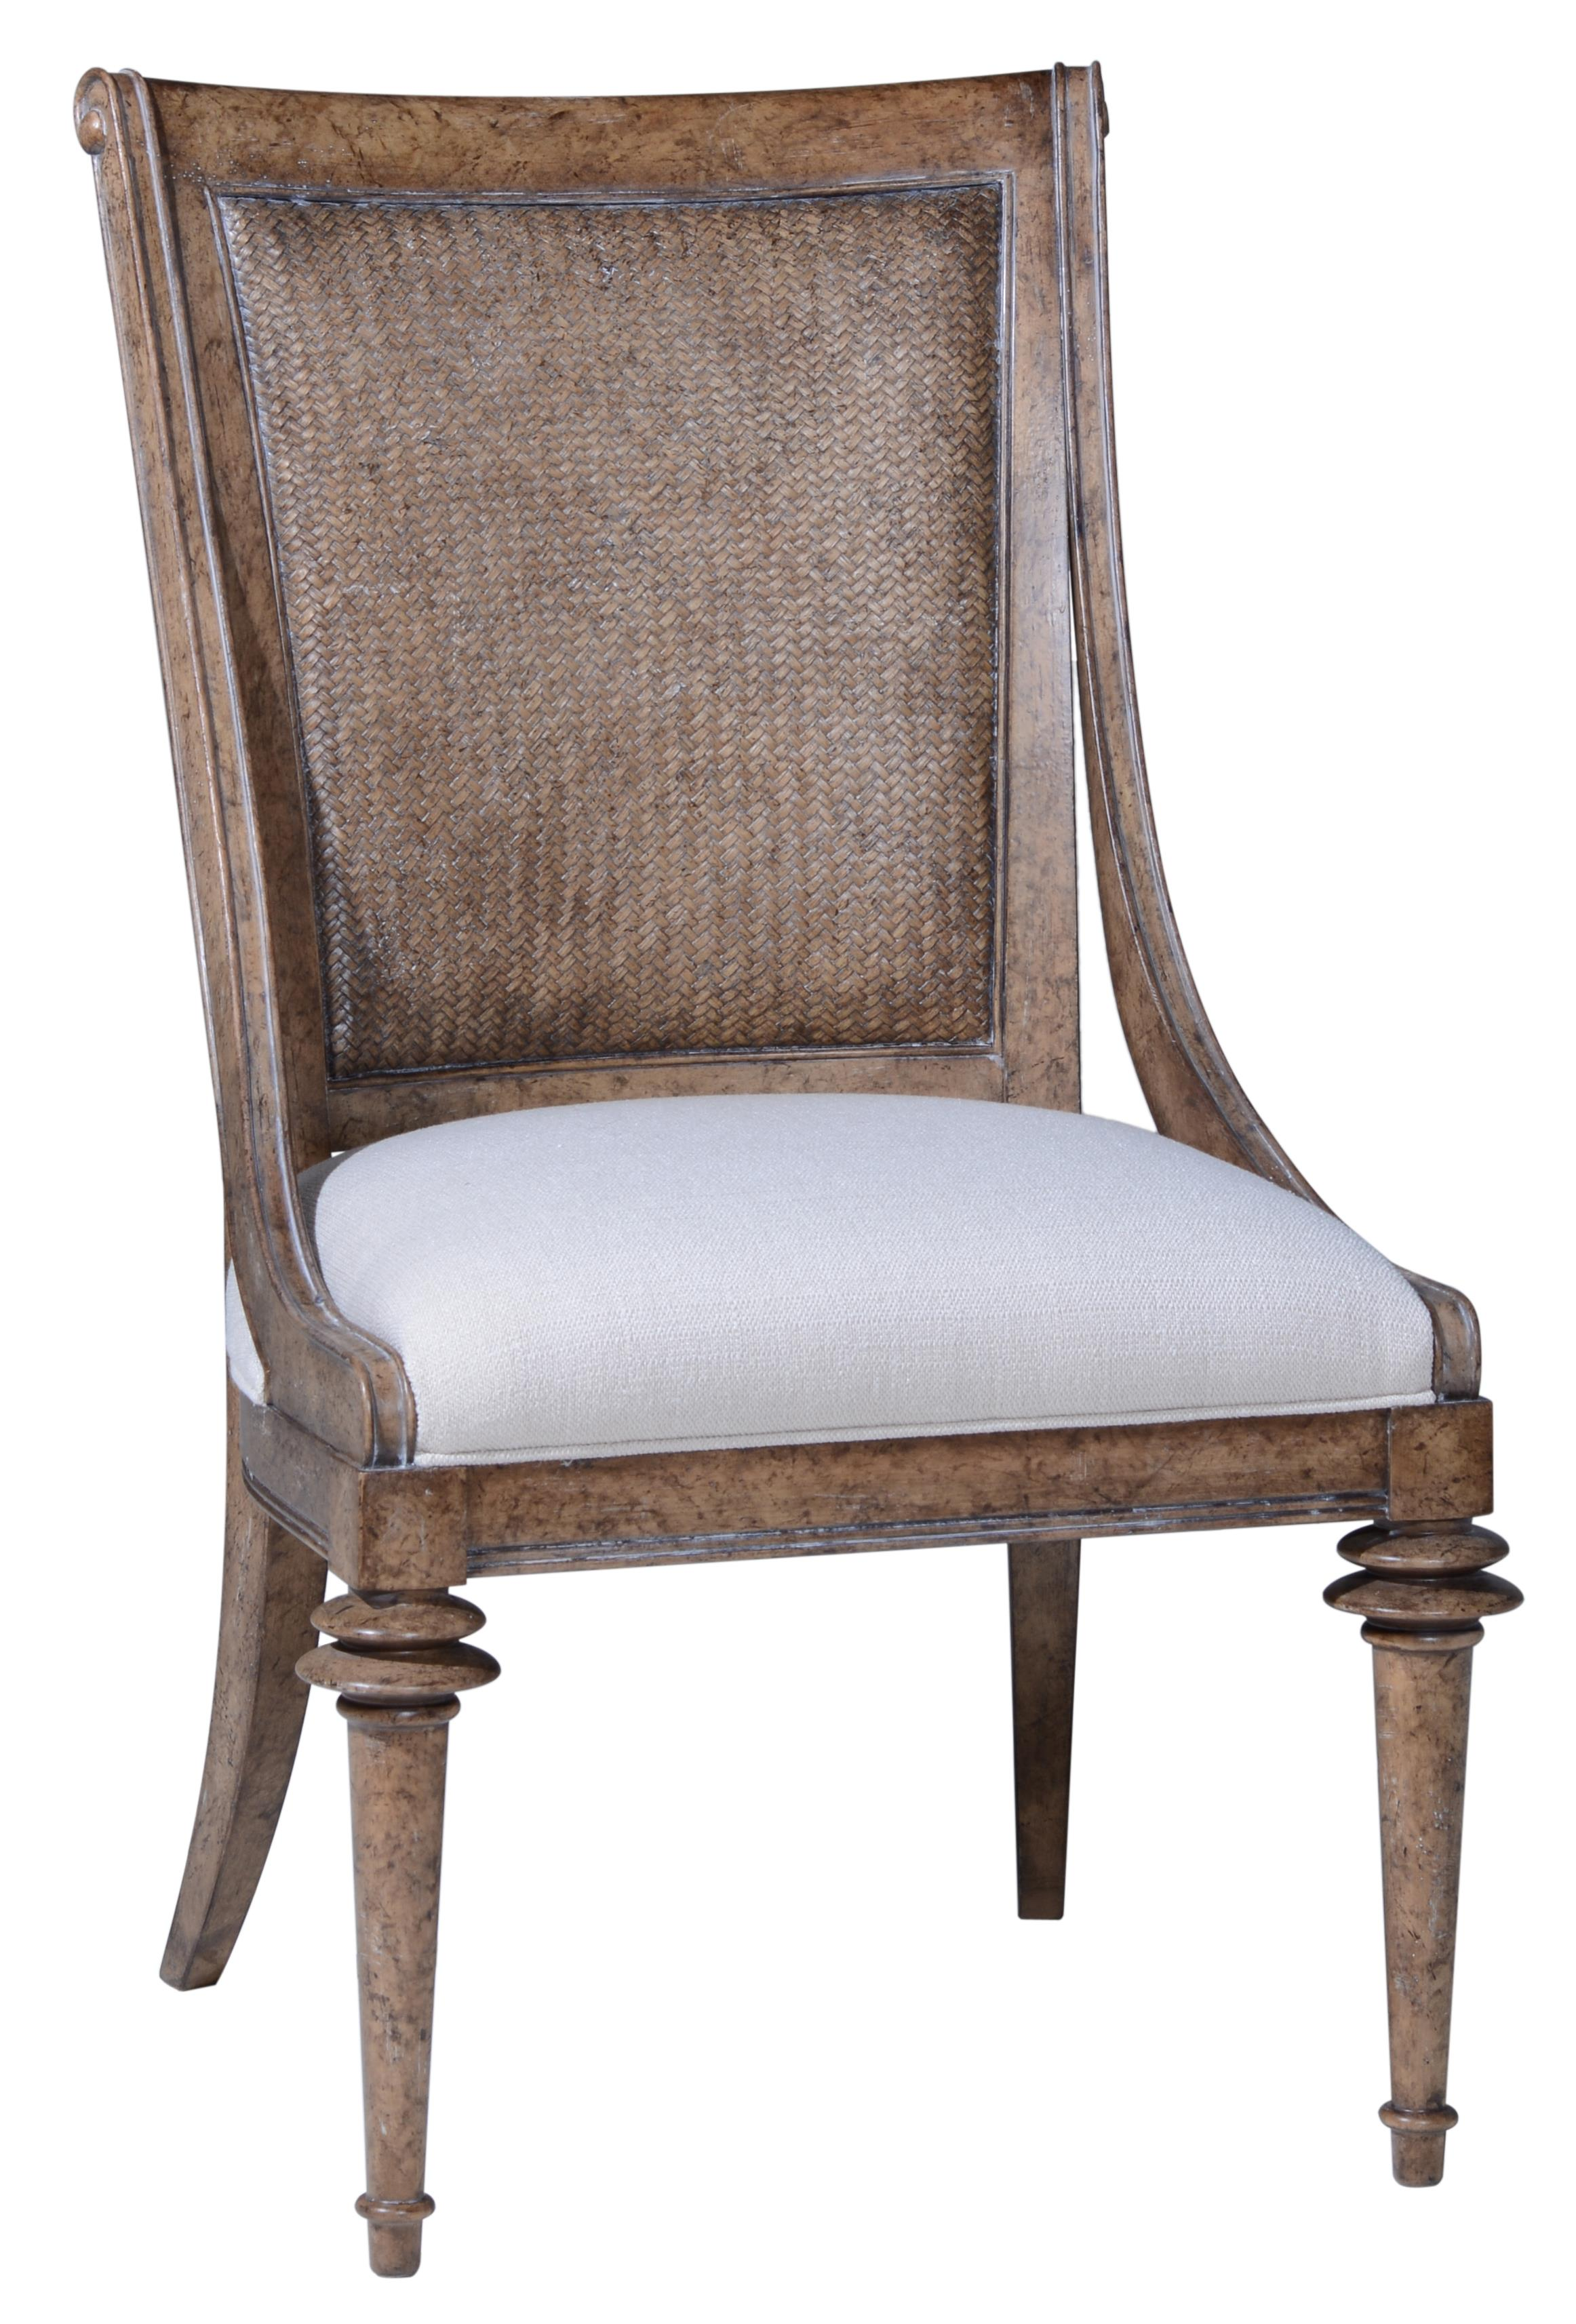 Pavilion Chair A R T Furniture Inc Pavilion 229200 2608 Woven Back Sling